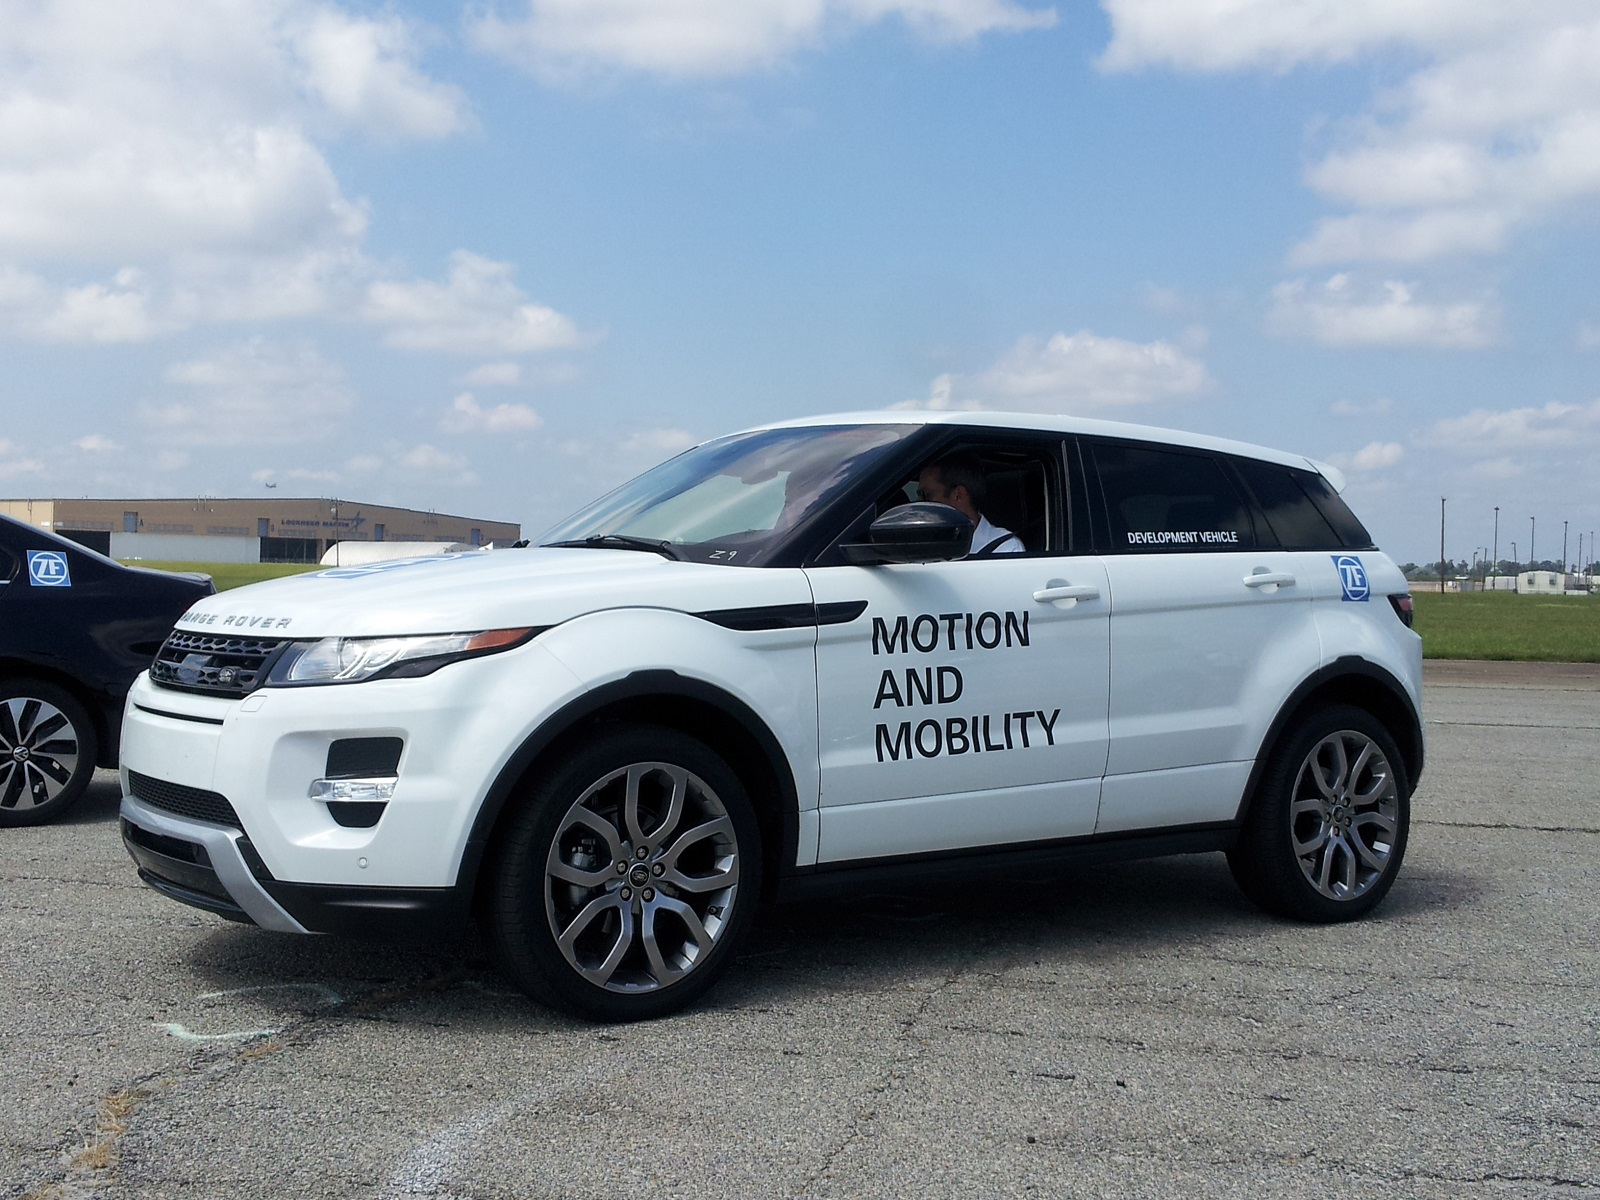 2014 Range Rover Evoque Driving The New Nine Speed Automatic